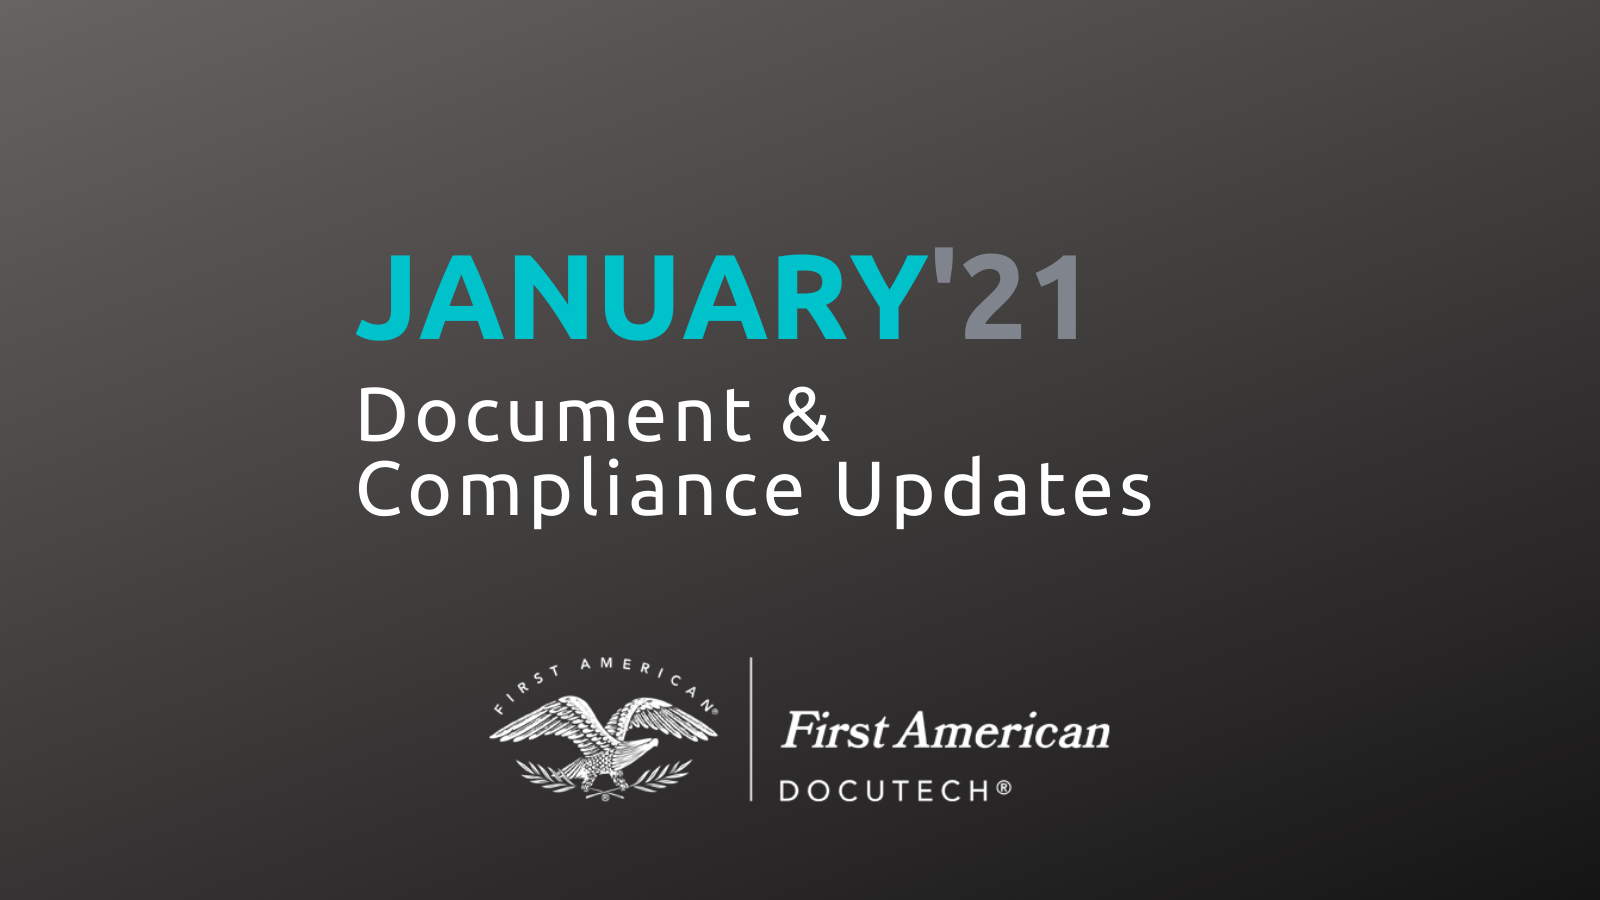 January 2021 Document & Compliance Updates